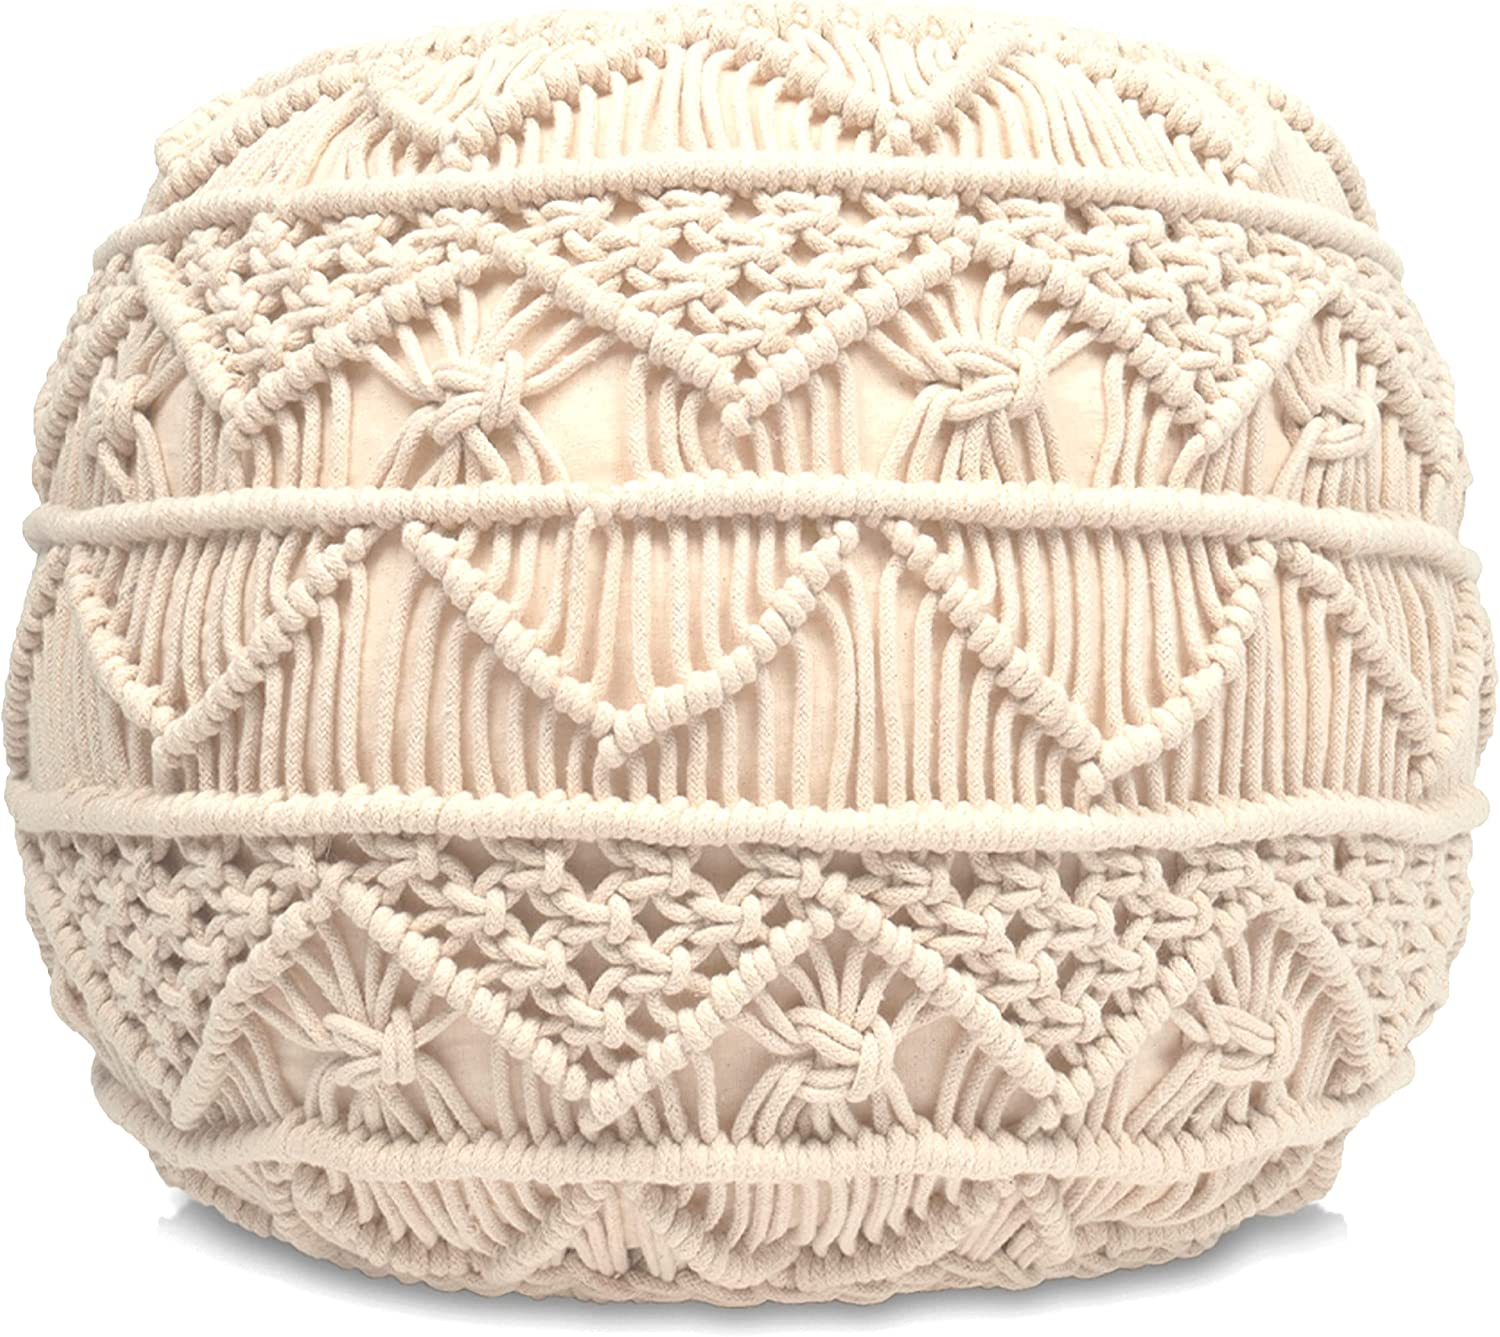 Loominaire Rustic We OFFer at cheap prices Macrame Outlet SALE Pouf Footstool Woven Hand of Triglav